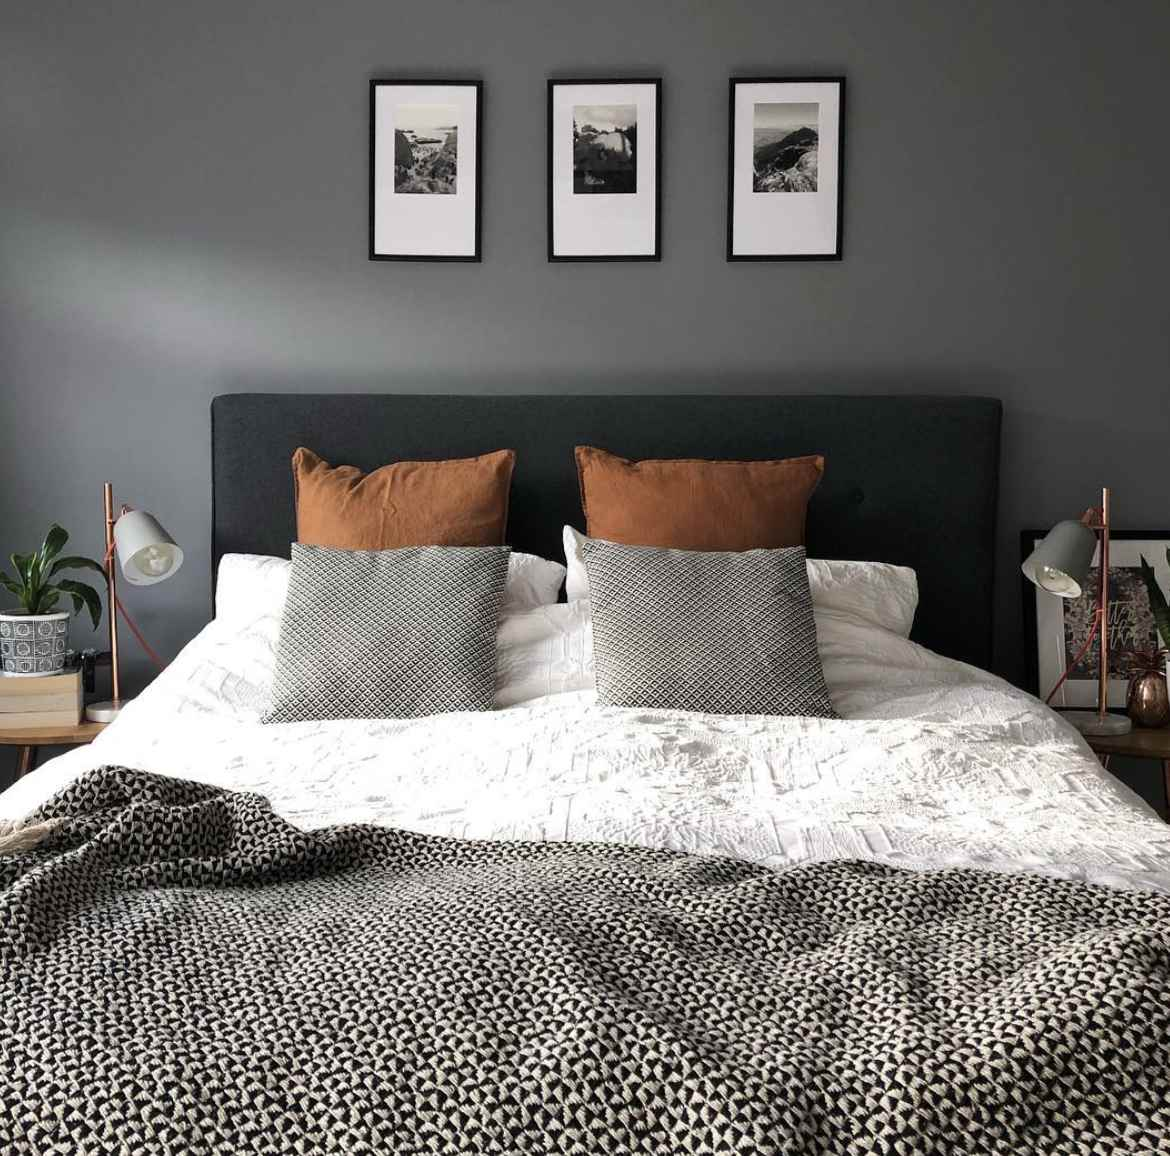 Bedroom with gray paint